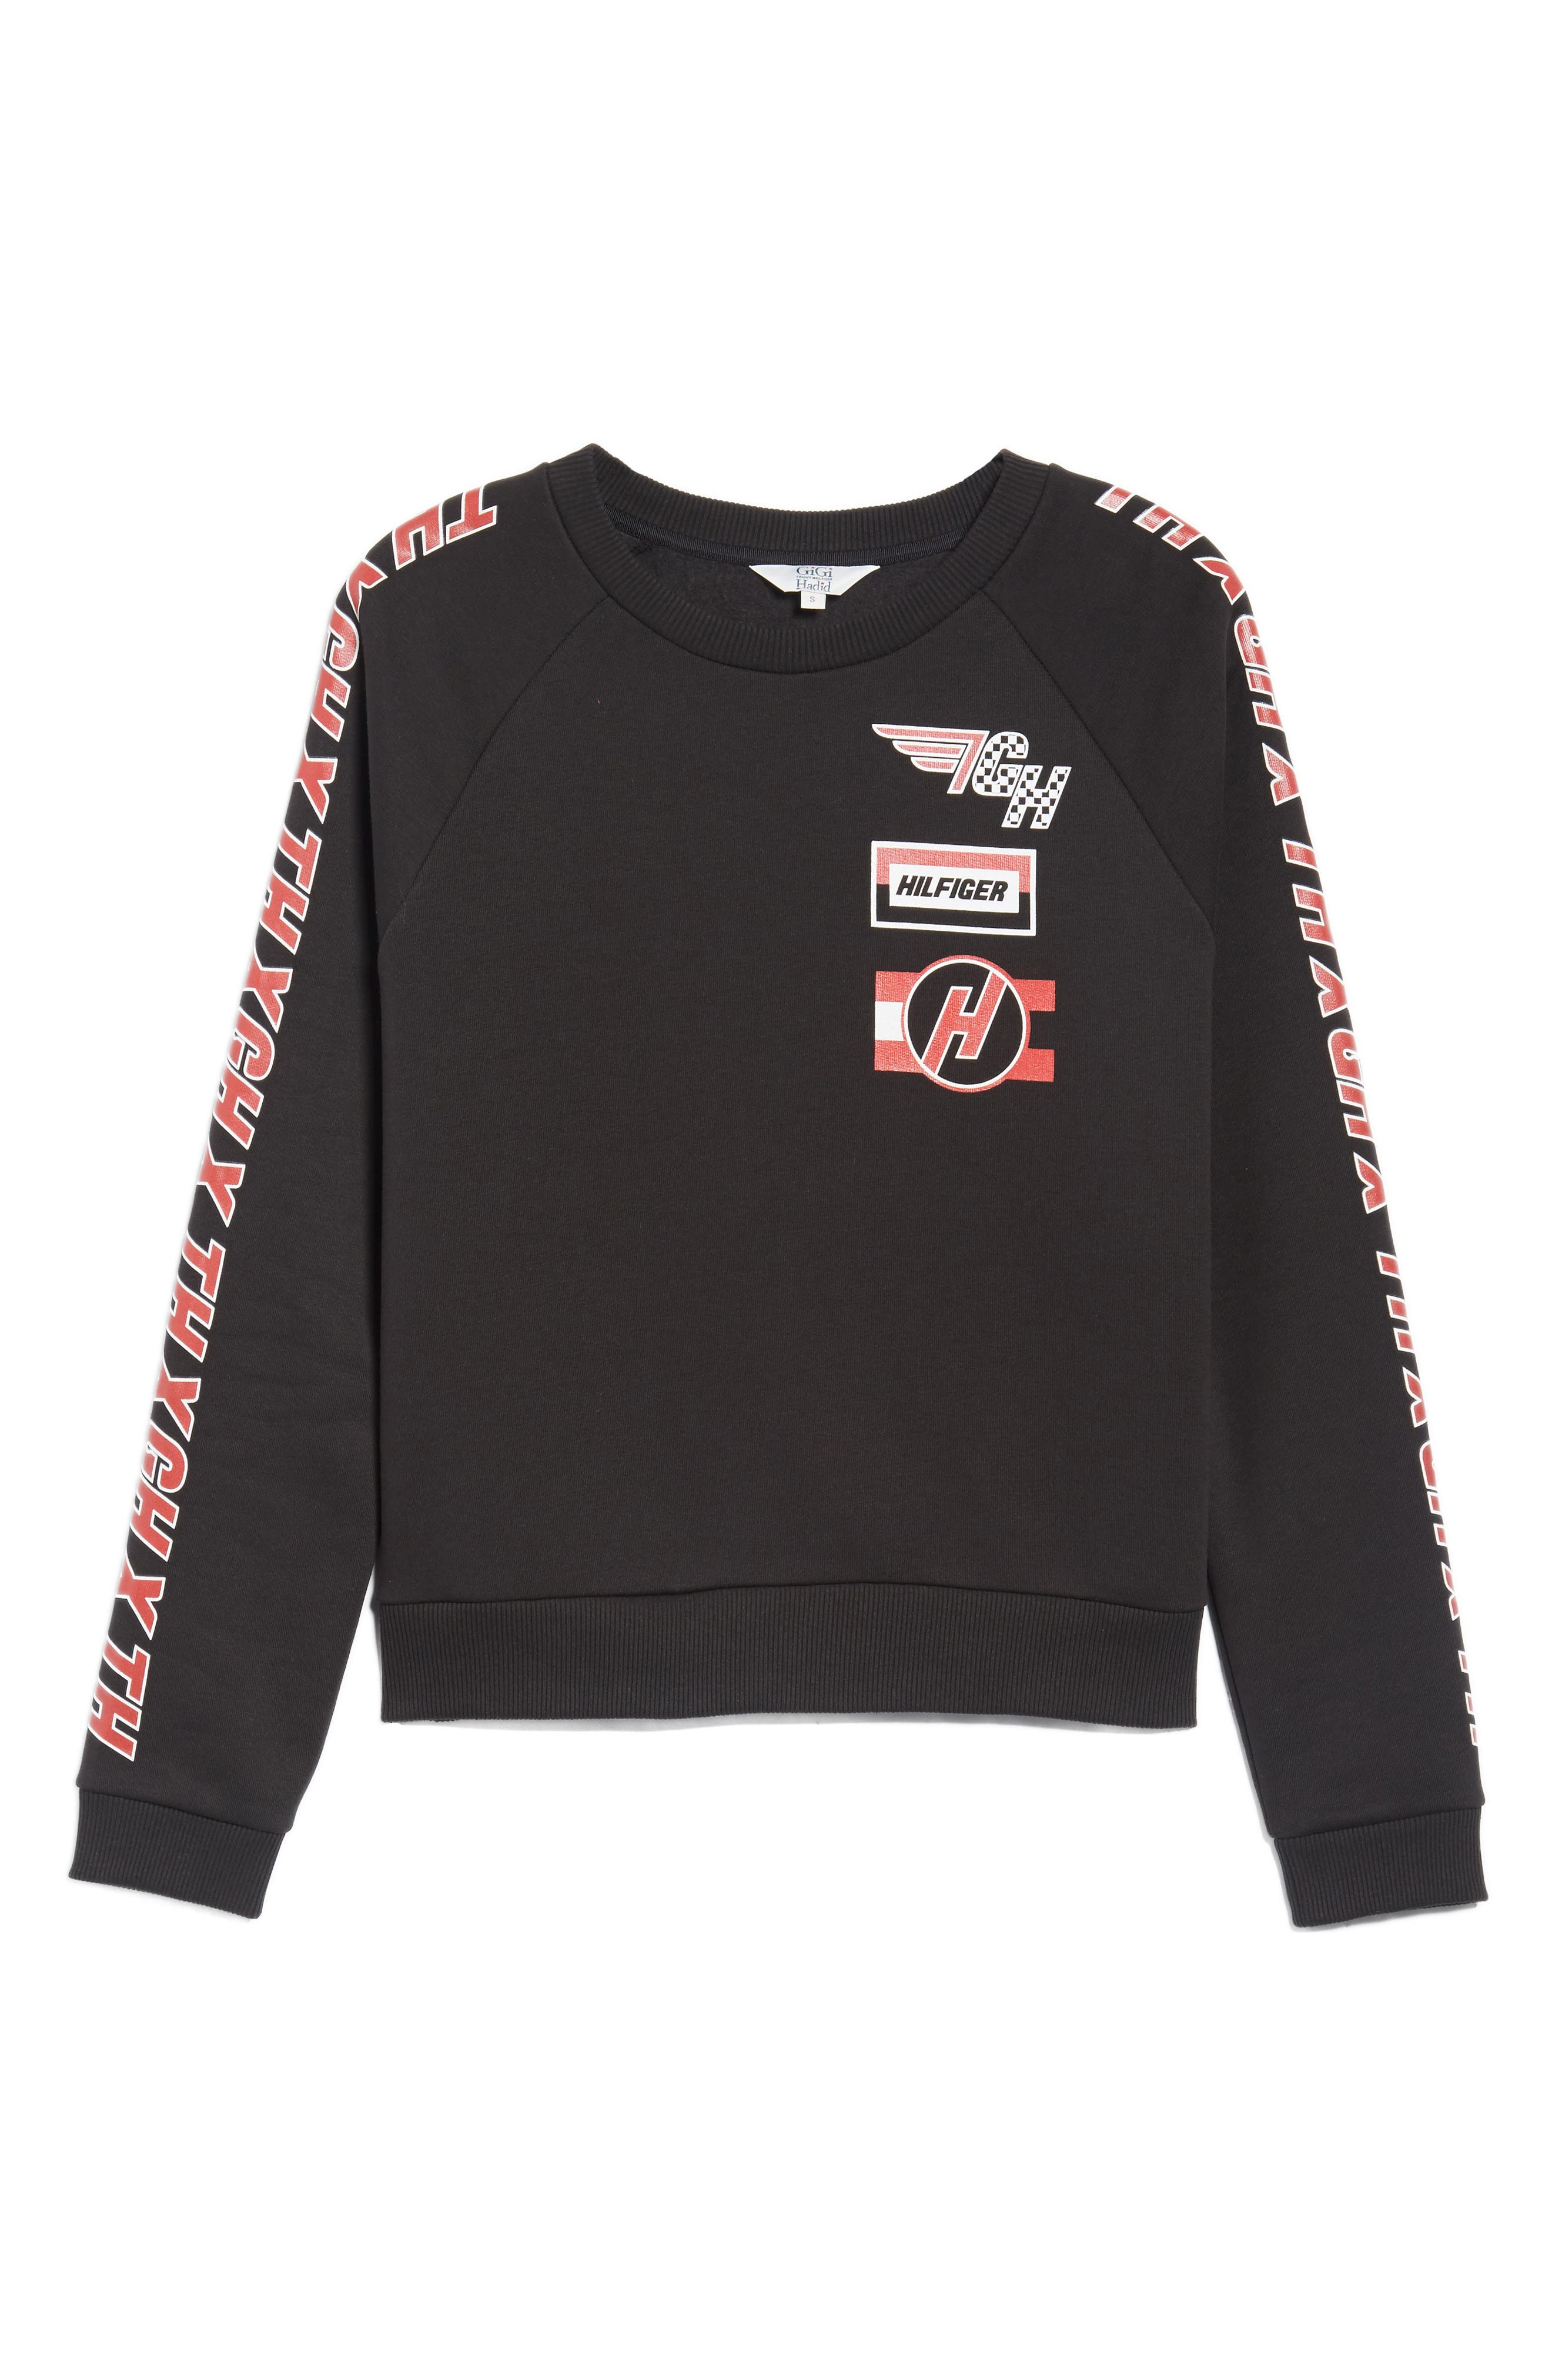 x Gigi Hadid Team Sweatshirt,                             Alternate thumbnail 7, color,                             004